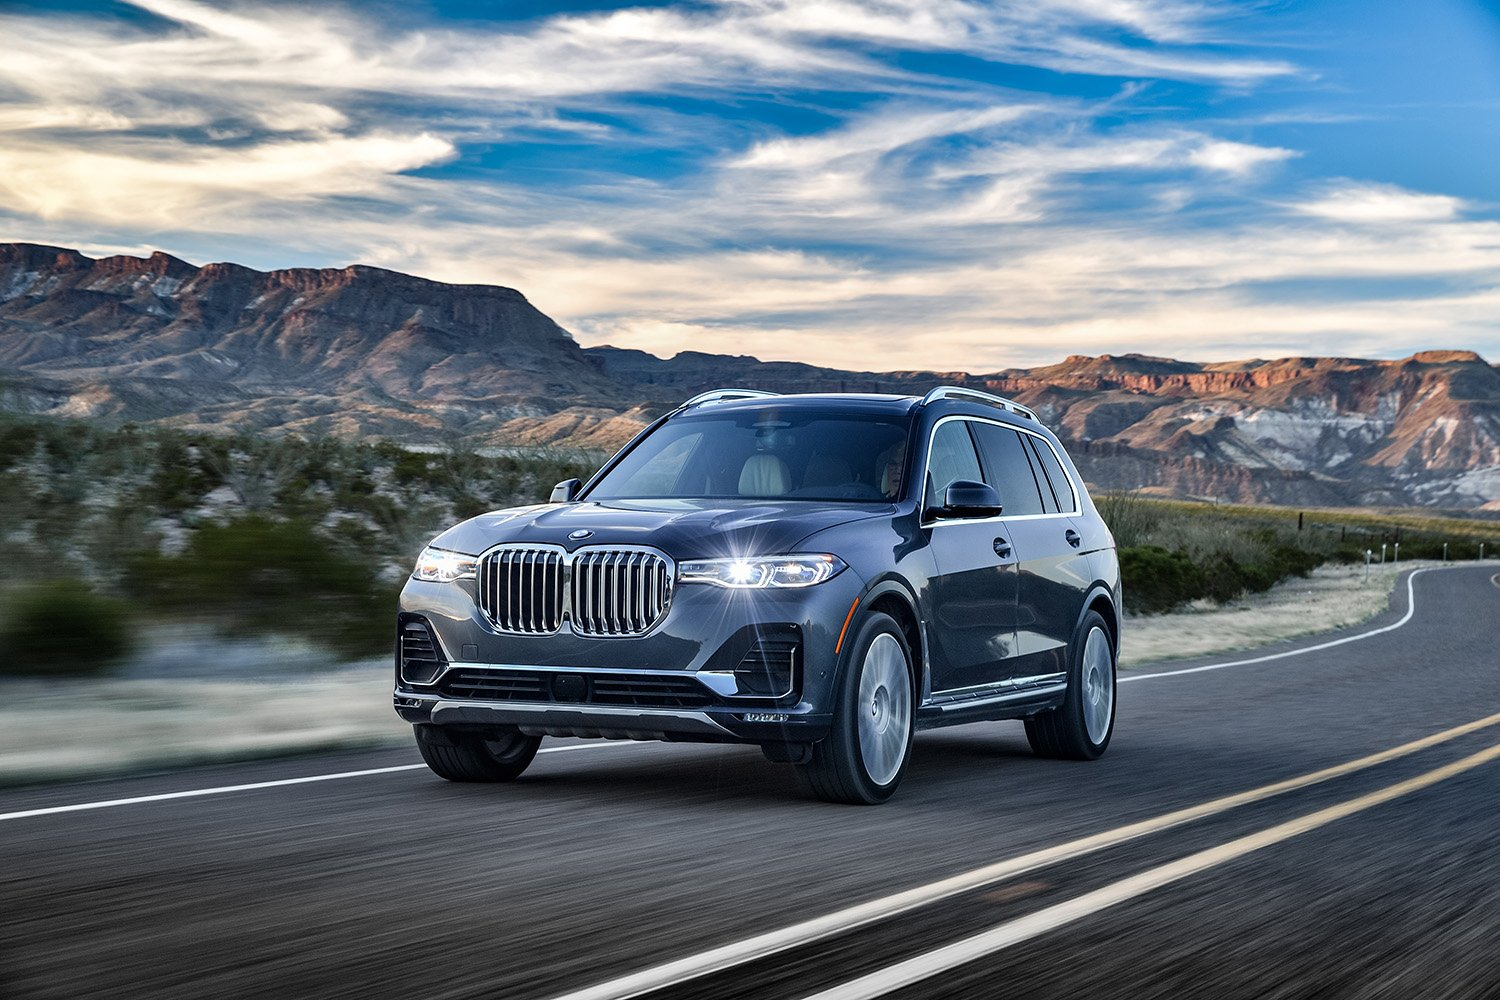 BMW Malaysia Introduces the First-Ever BMW X7.